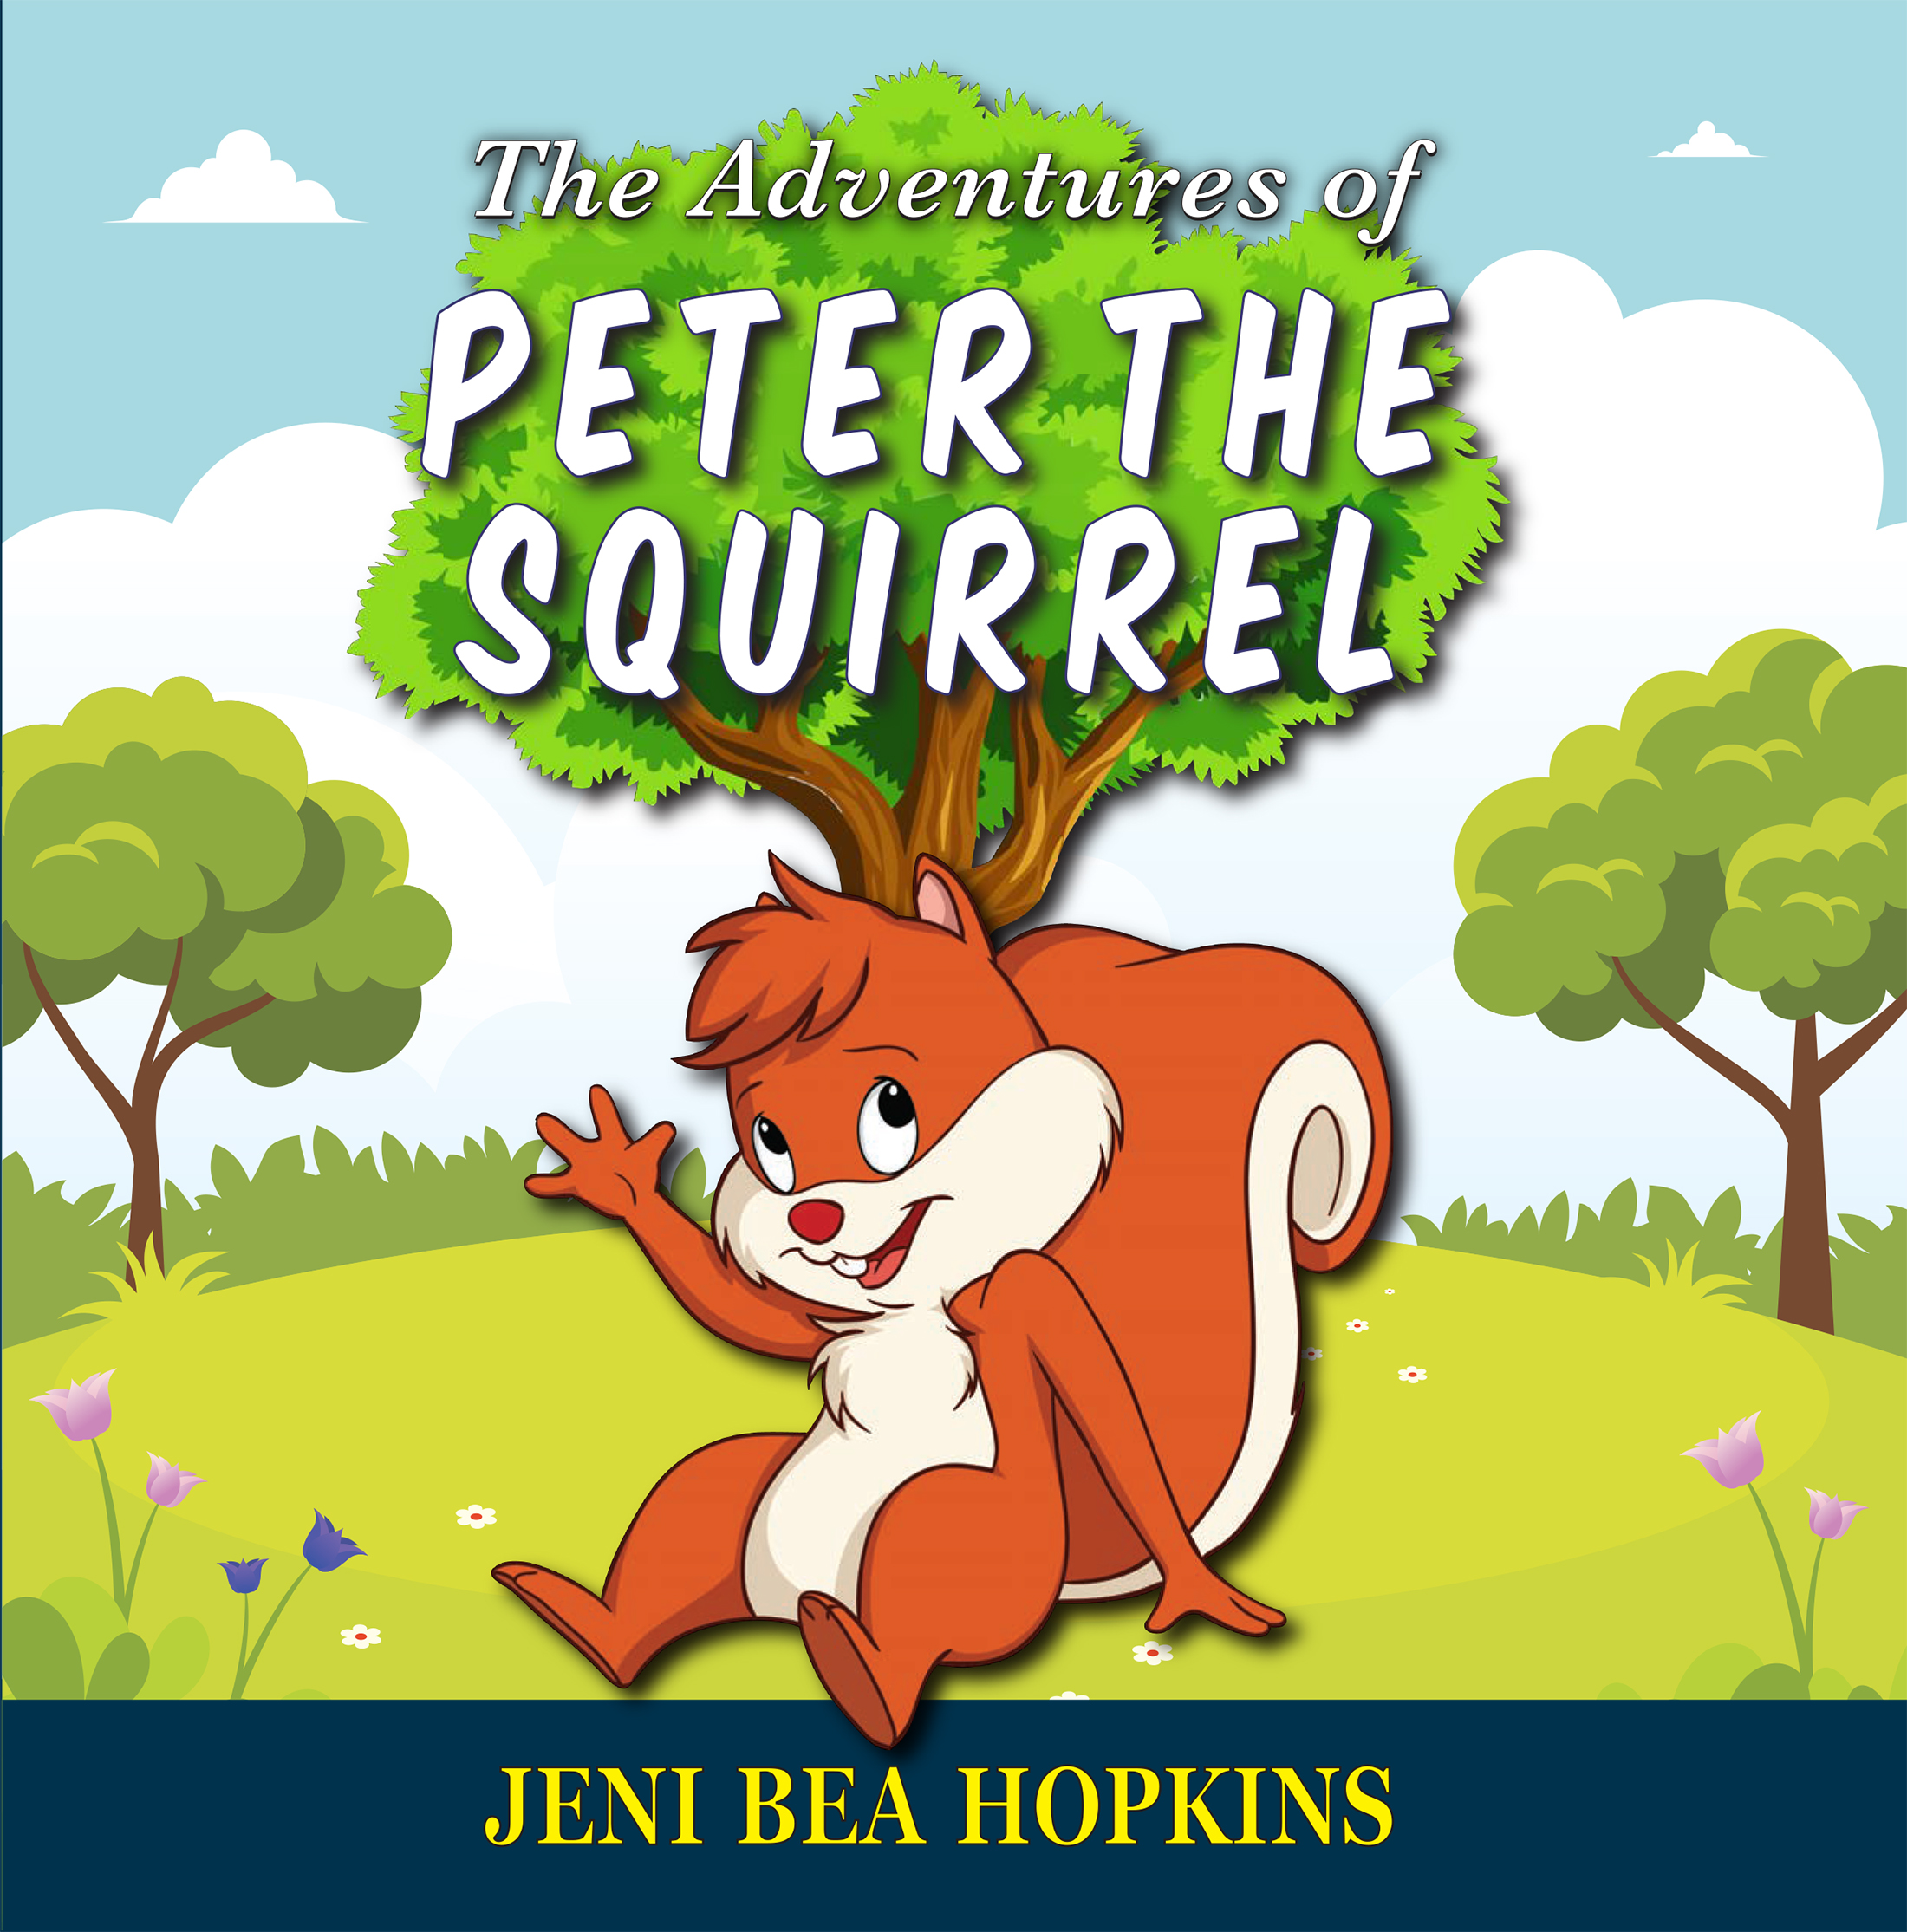 The Adventures of Peter the Squirrel Image